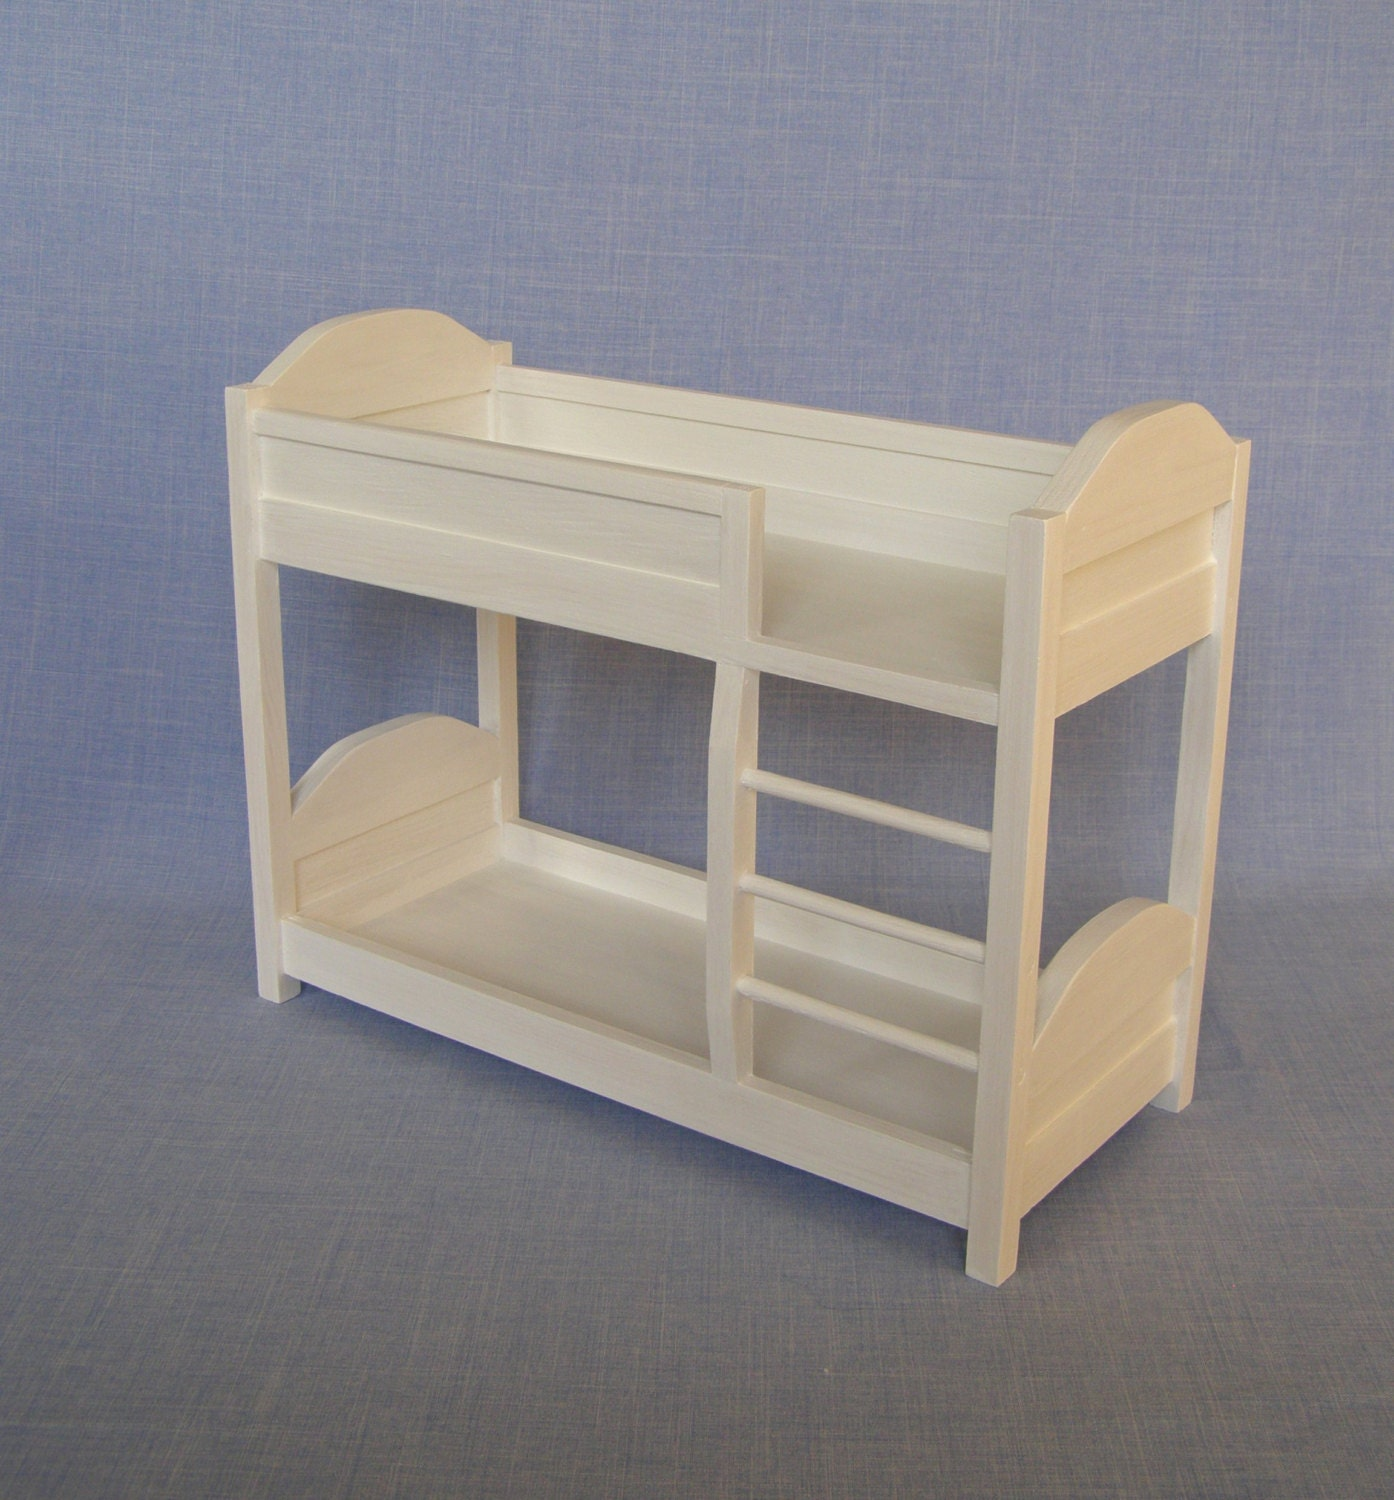 Bunk Bed For 12 Inch Doll 1 6 Scale Bedroom By Furniturefordolls